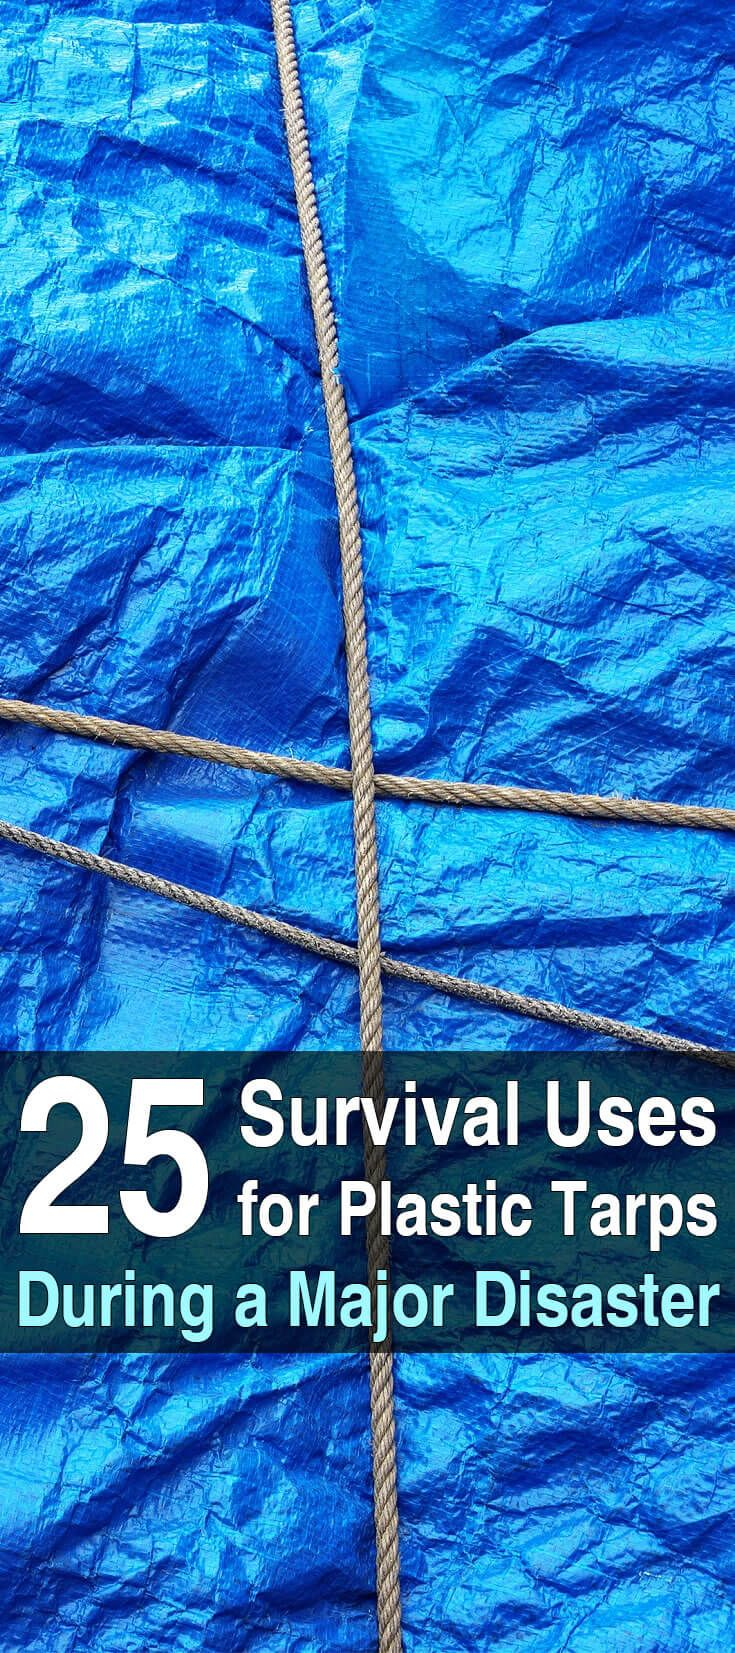 Tarps come in many sizes and varying qualities, but all of them can be very useful in a survival situation. Here are 25 survival uses.